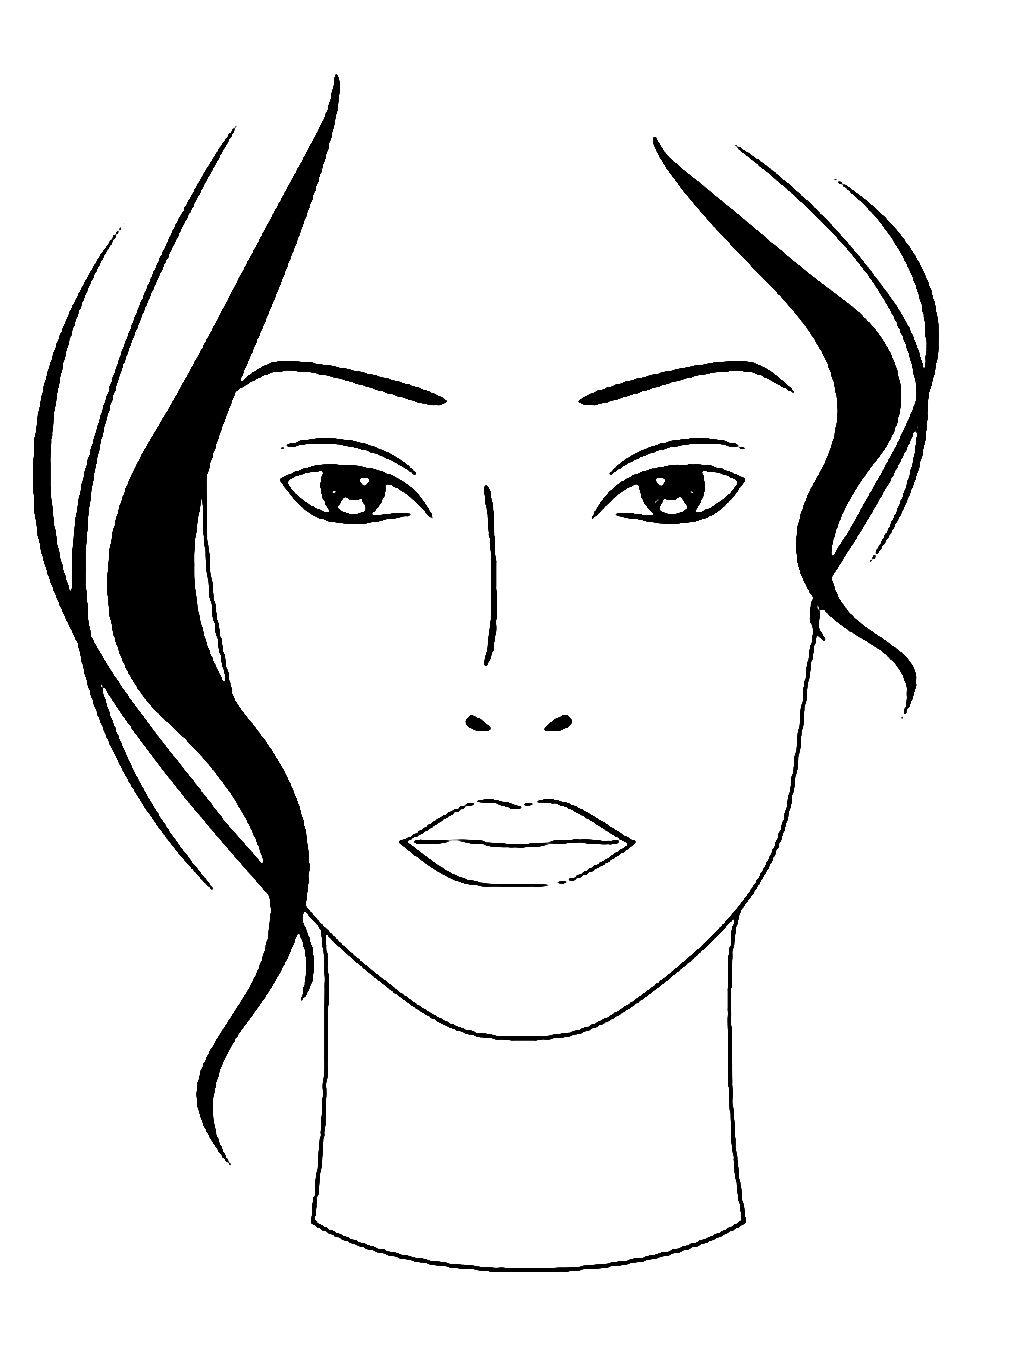 Blanco Facecharts To Create Makeup Looks On Paper Great For Makeup School Or Moodboards Print On Watercolor Paper For T Curso De Maquillaje Dibujos Imagenes